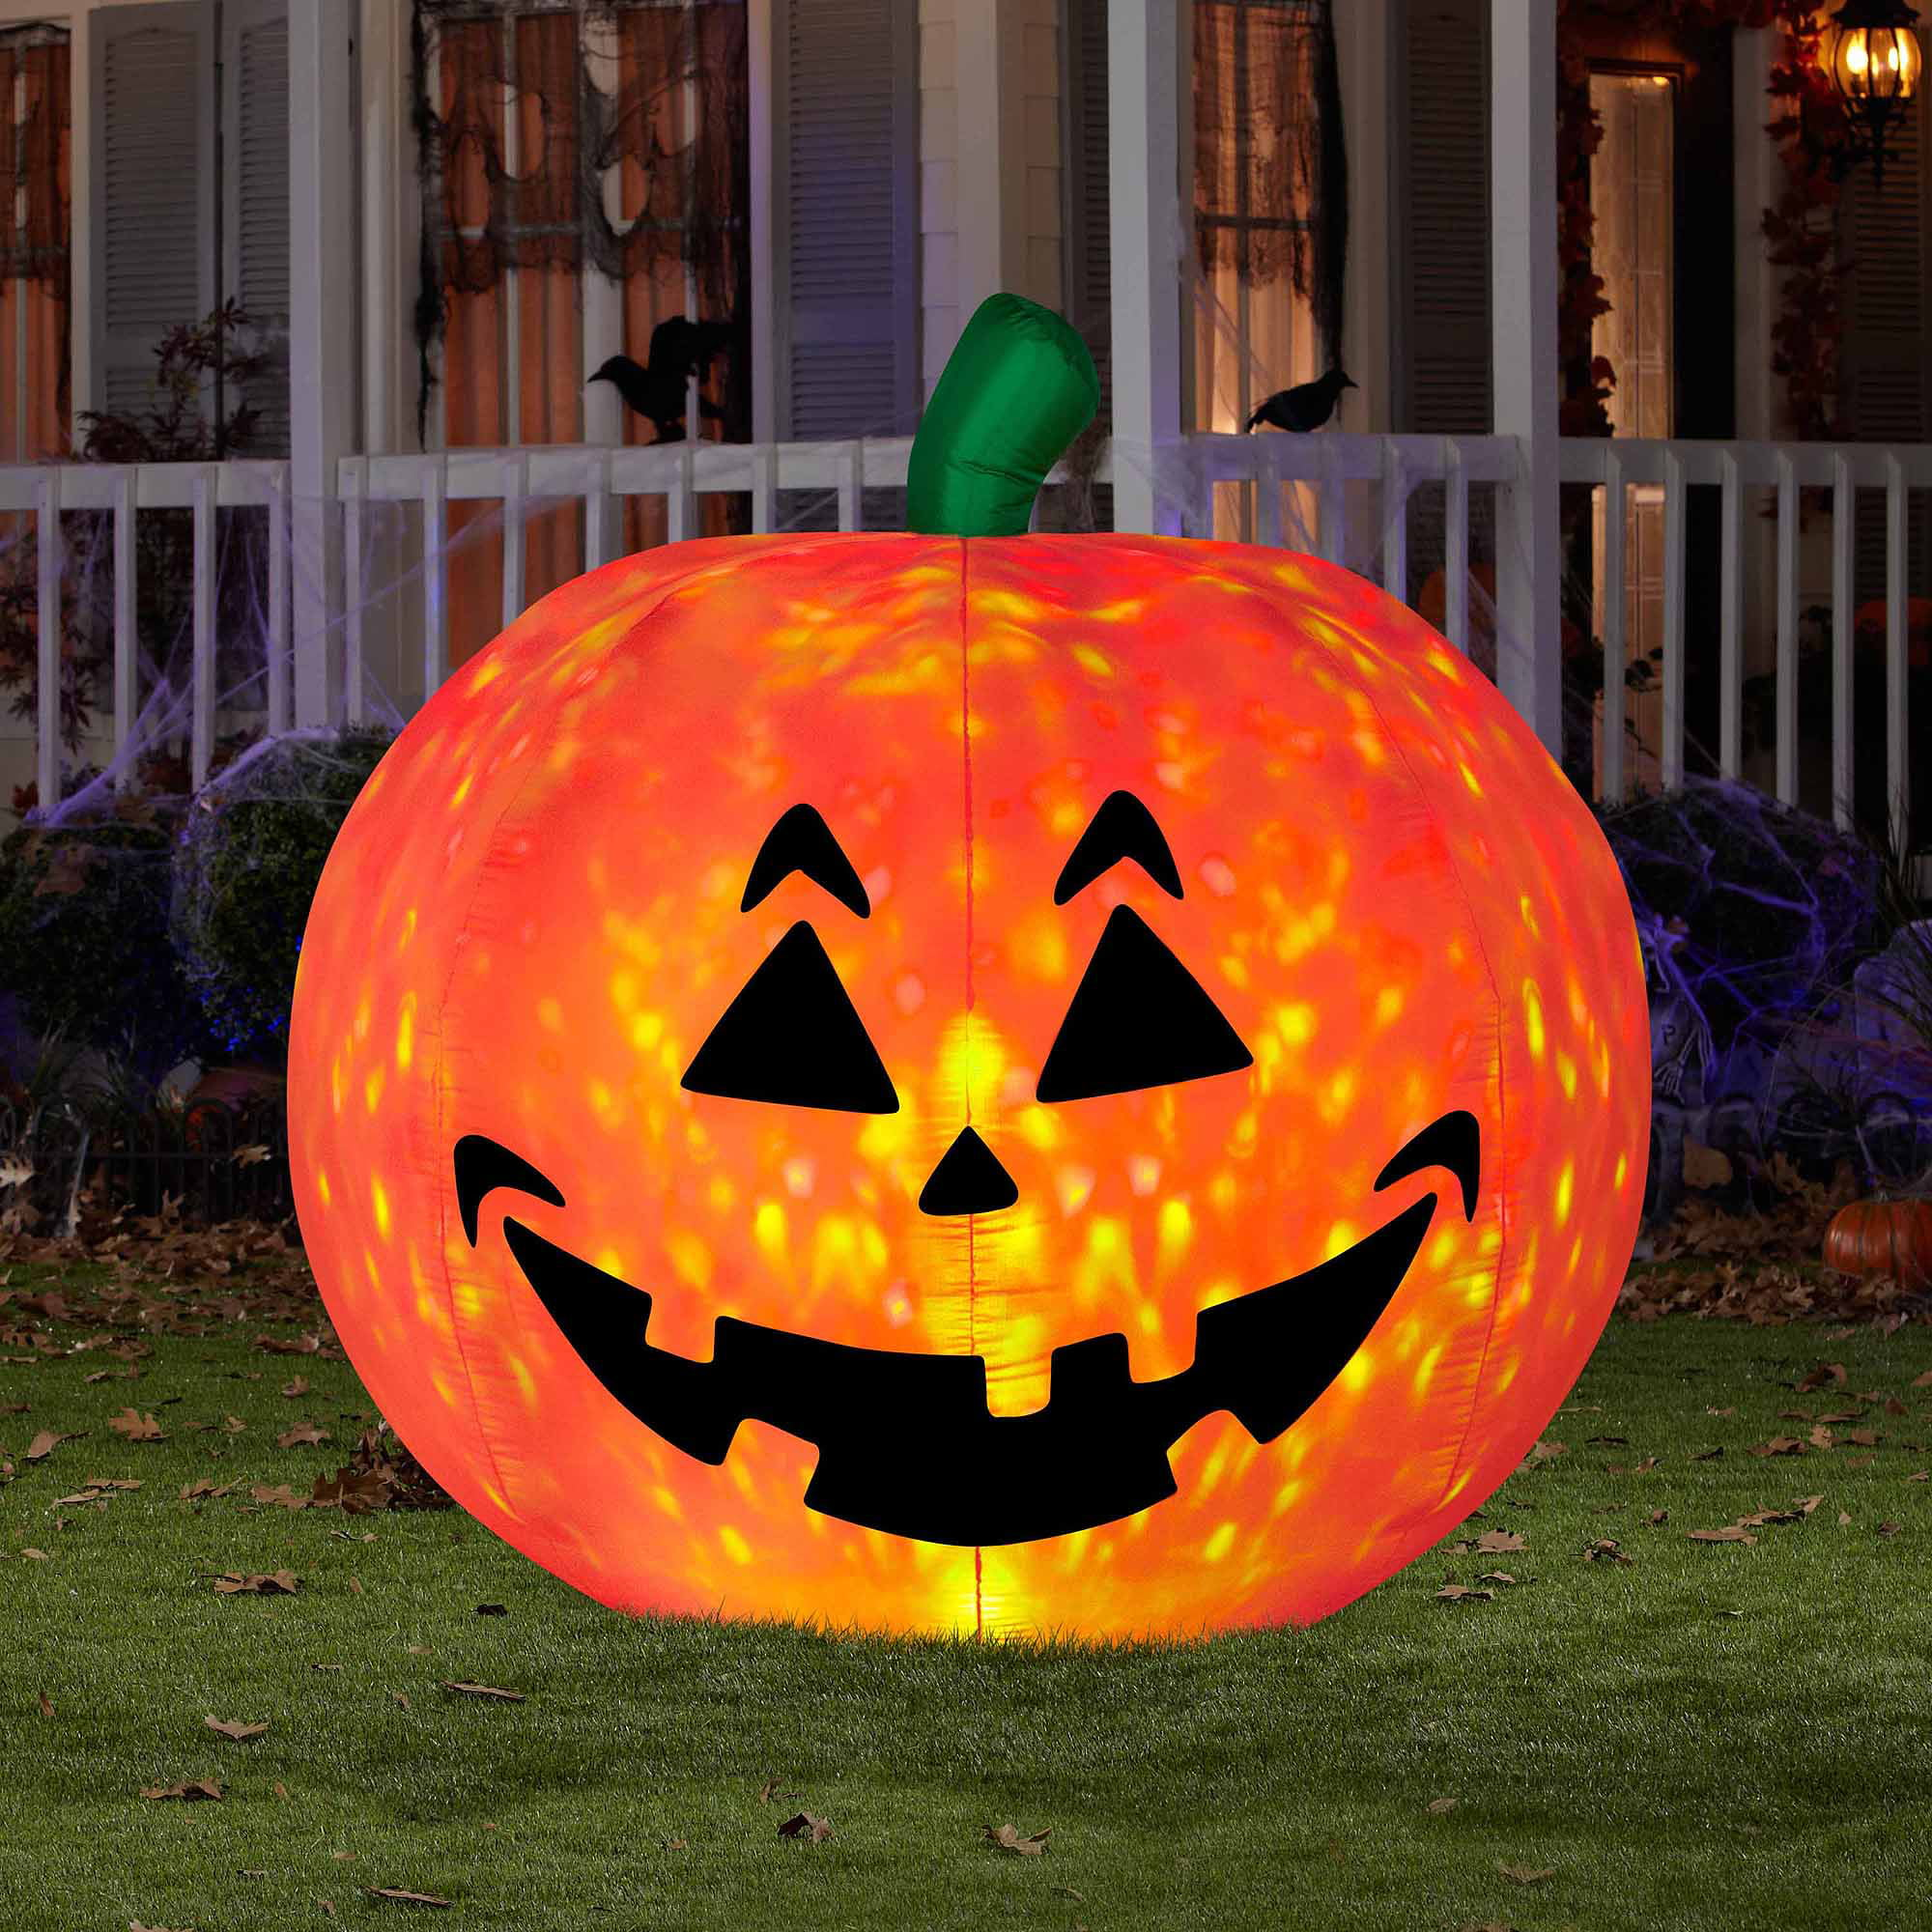 5 ft airblown inflatables projection fire and ice pumpkin large walmartcom - Halloween Inflatables Clearance